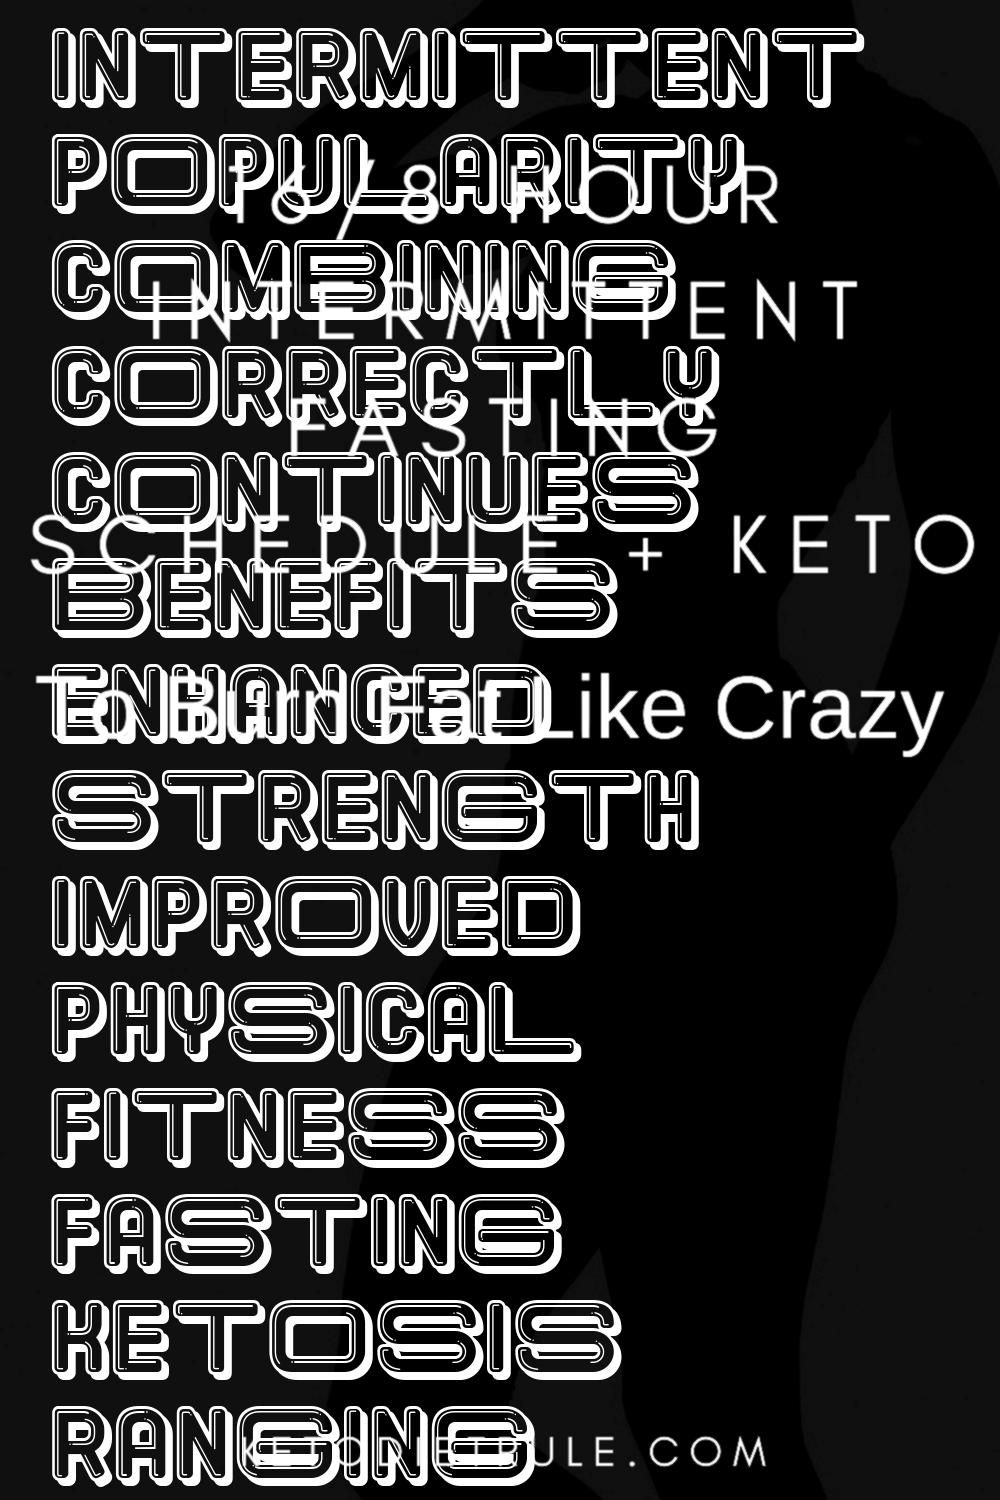 #intermittent #popularity #combining #correctly #continues #benefits #enhanced #strength #improved #...